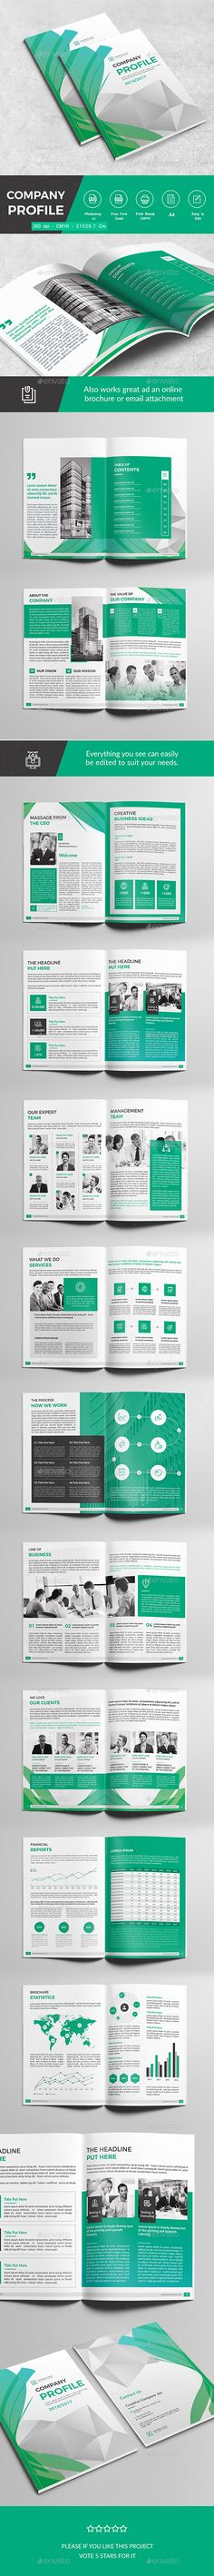 Company Profile Brochure 14 Pages A4 Company profile, Brochures - corporate profile template